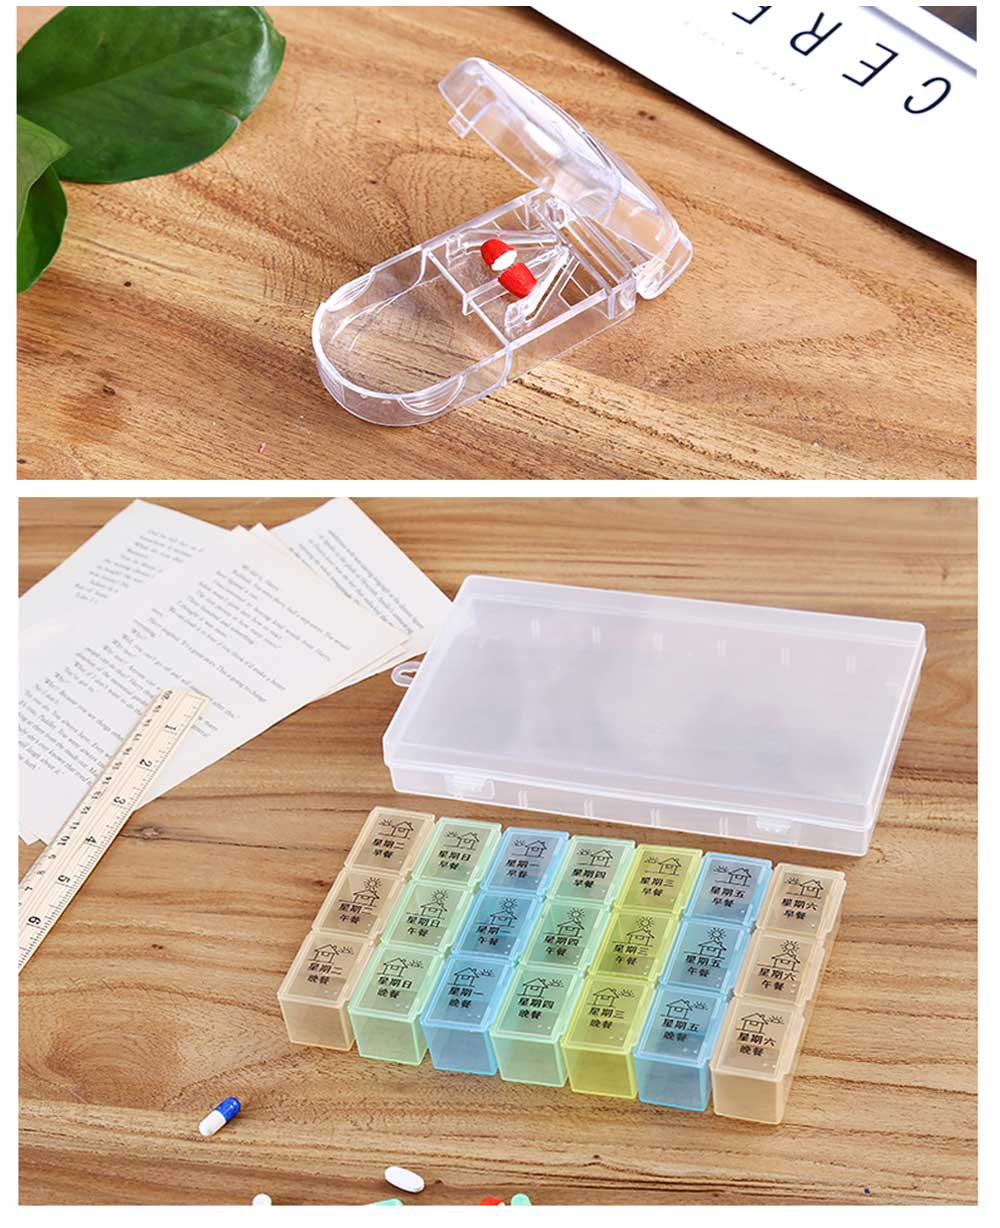 7 DAY Organizer Mini Pill Box Plastic Medicine Box for Pills Vitamin Tablets One-week Pill Organizer Container 9